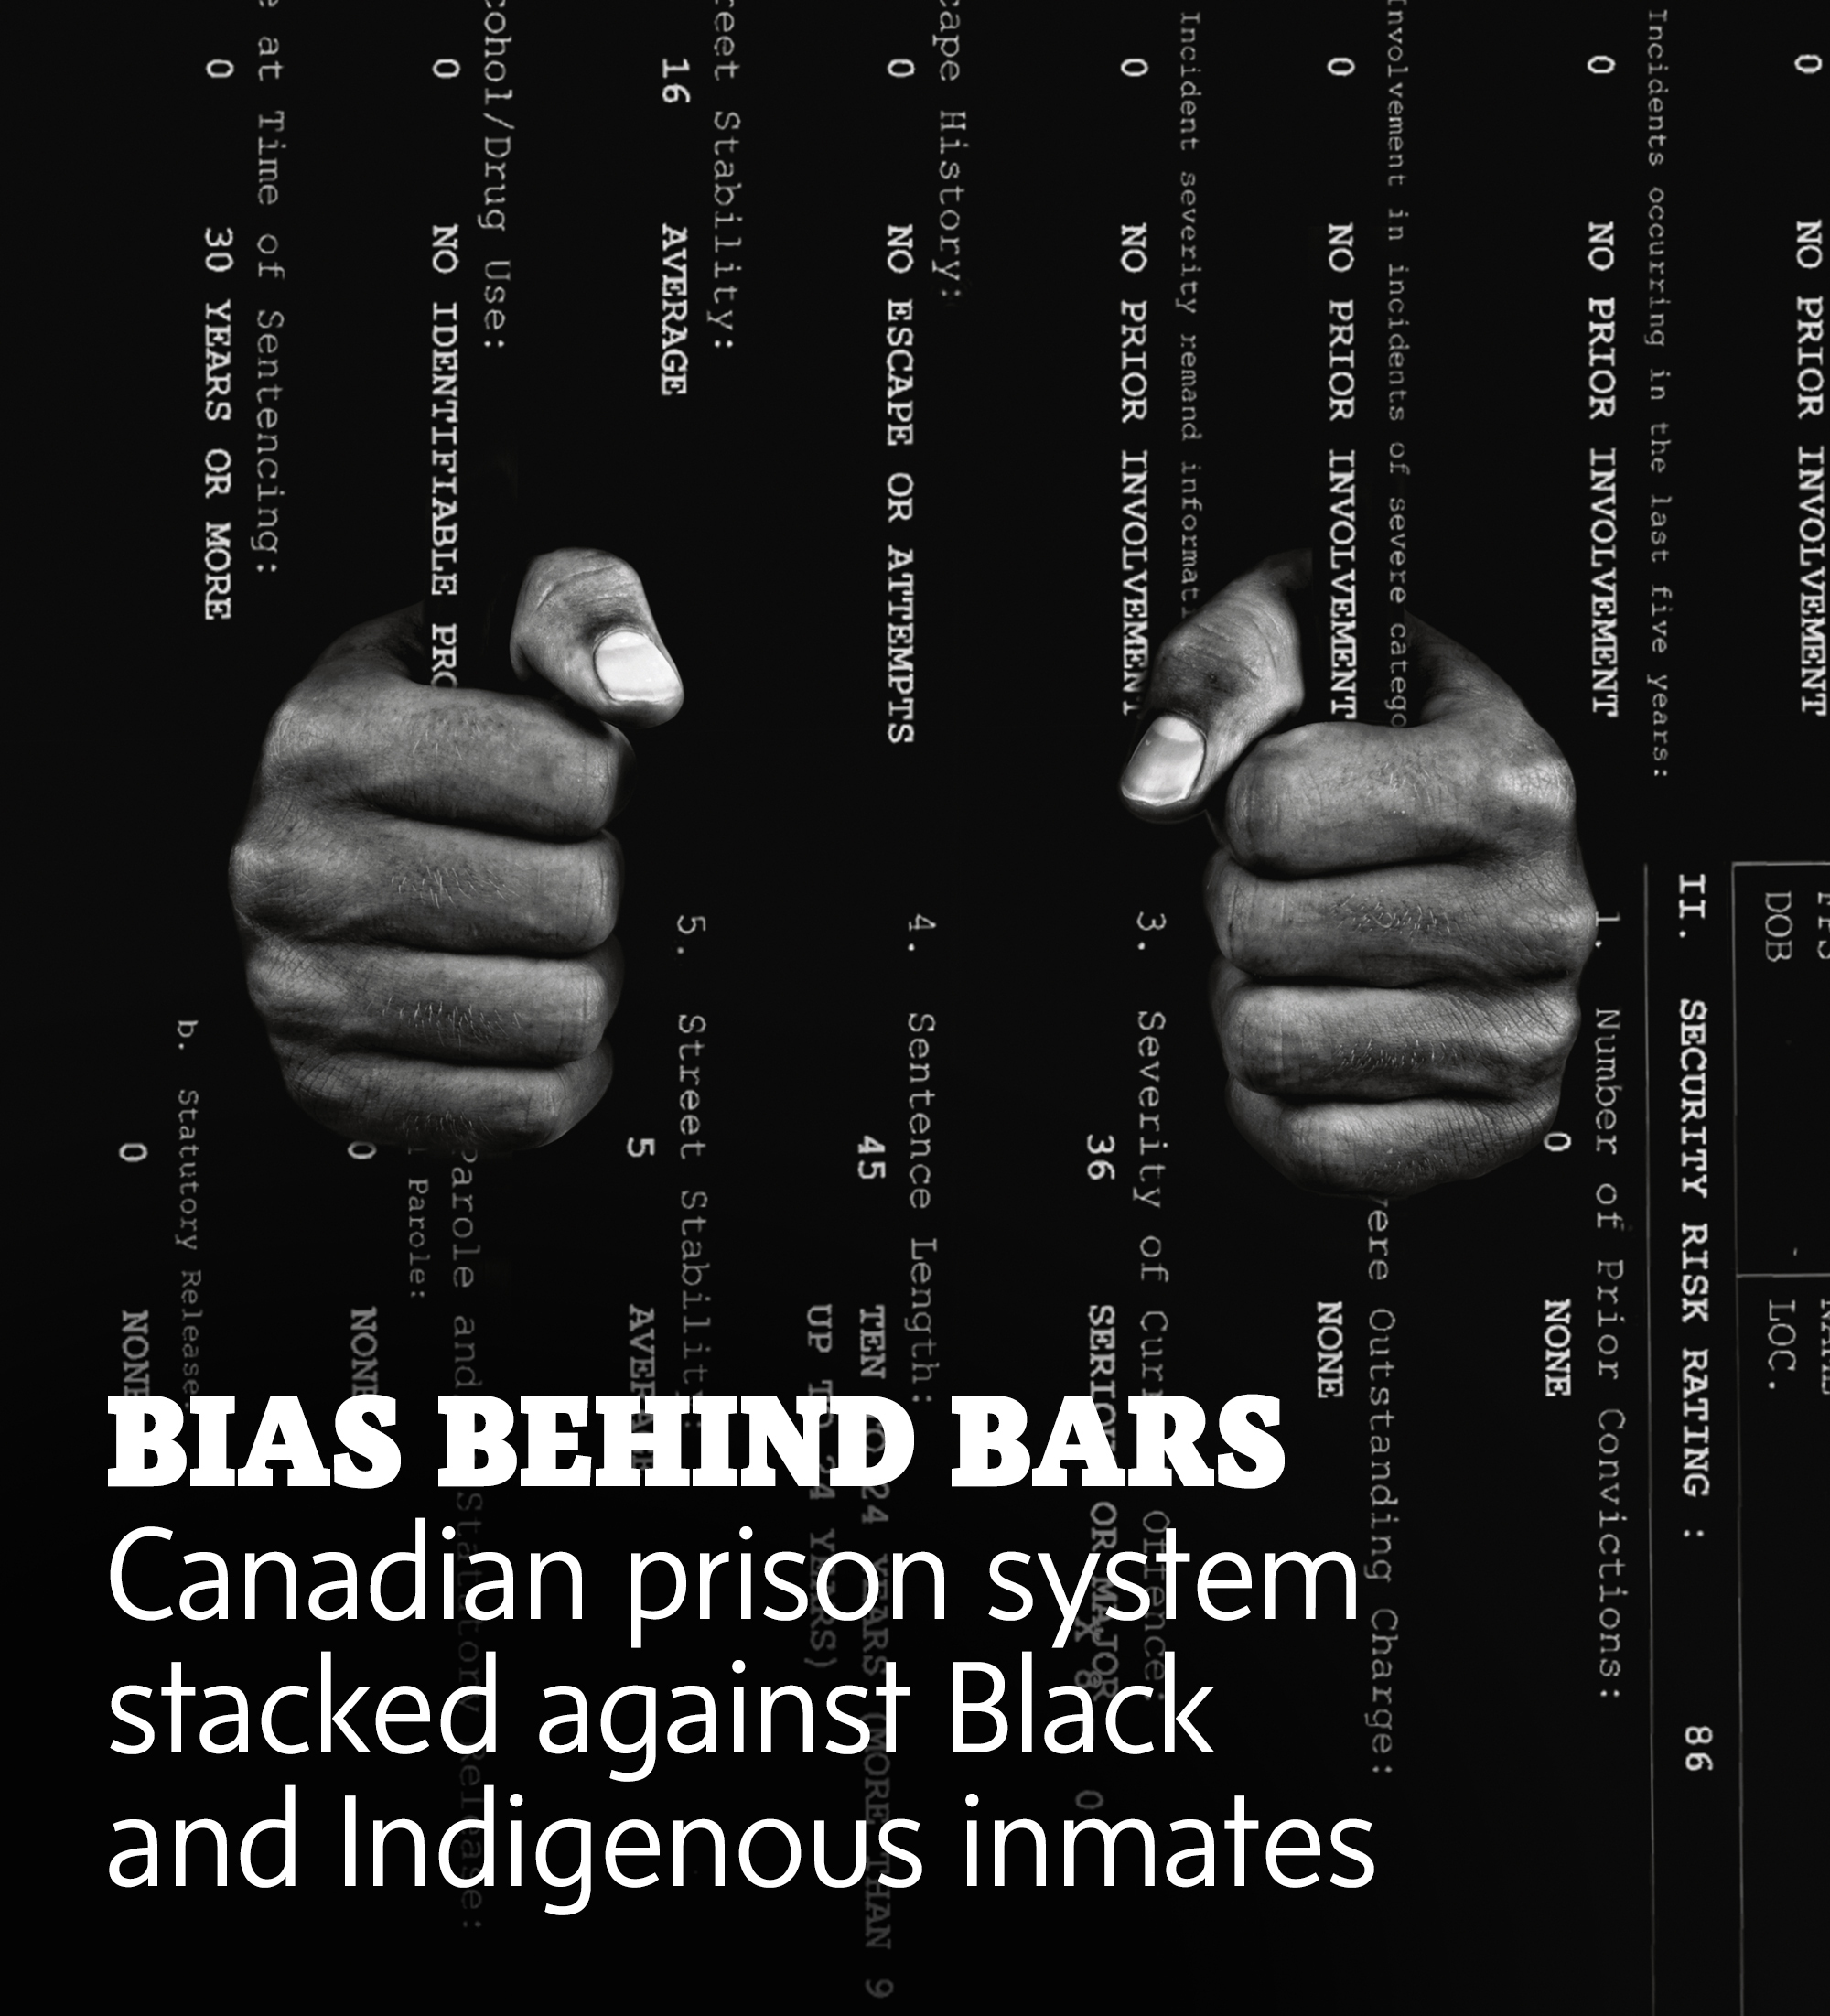 Bias behind bars: The Globe's newest investigation finds a prison system stacked against Black and Indigenous inmates.